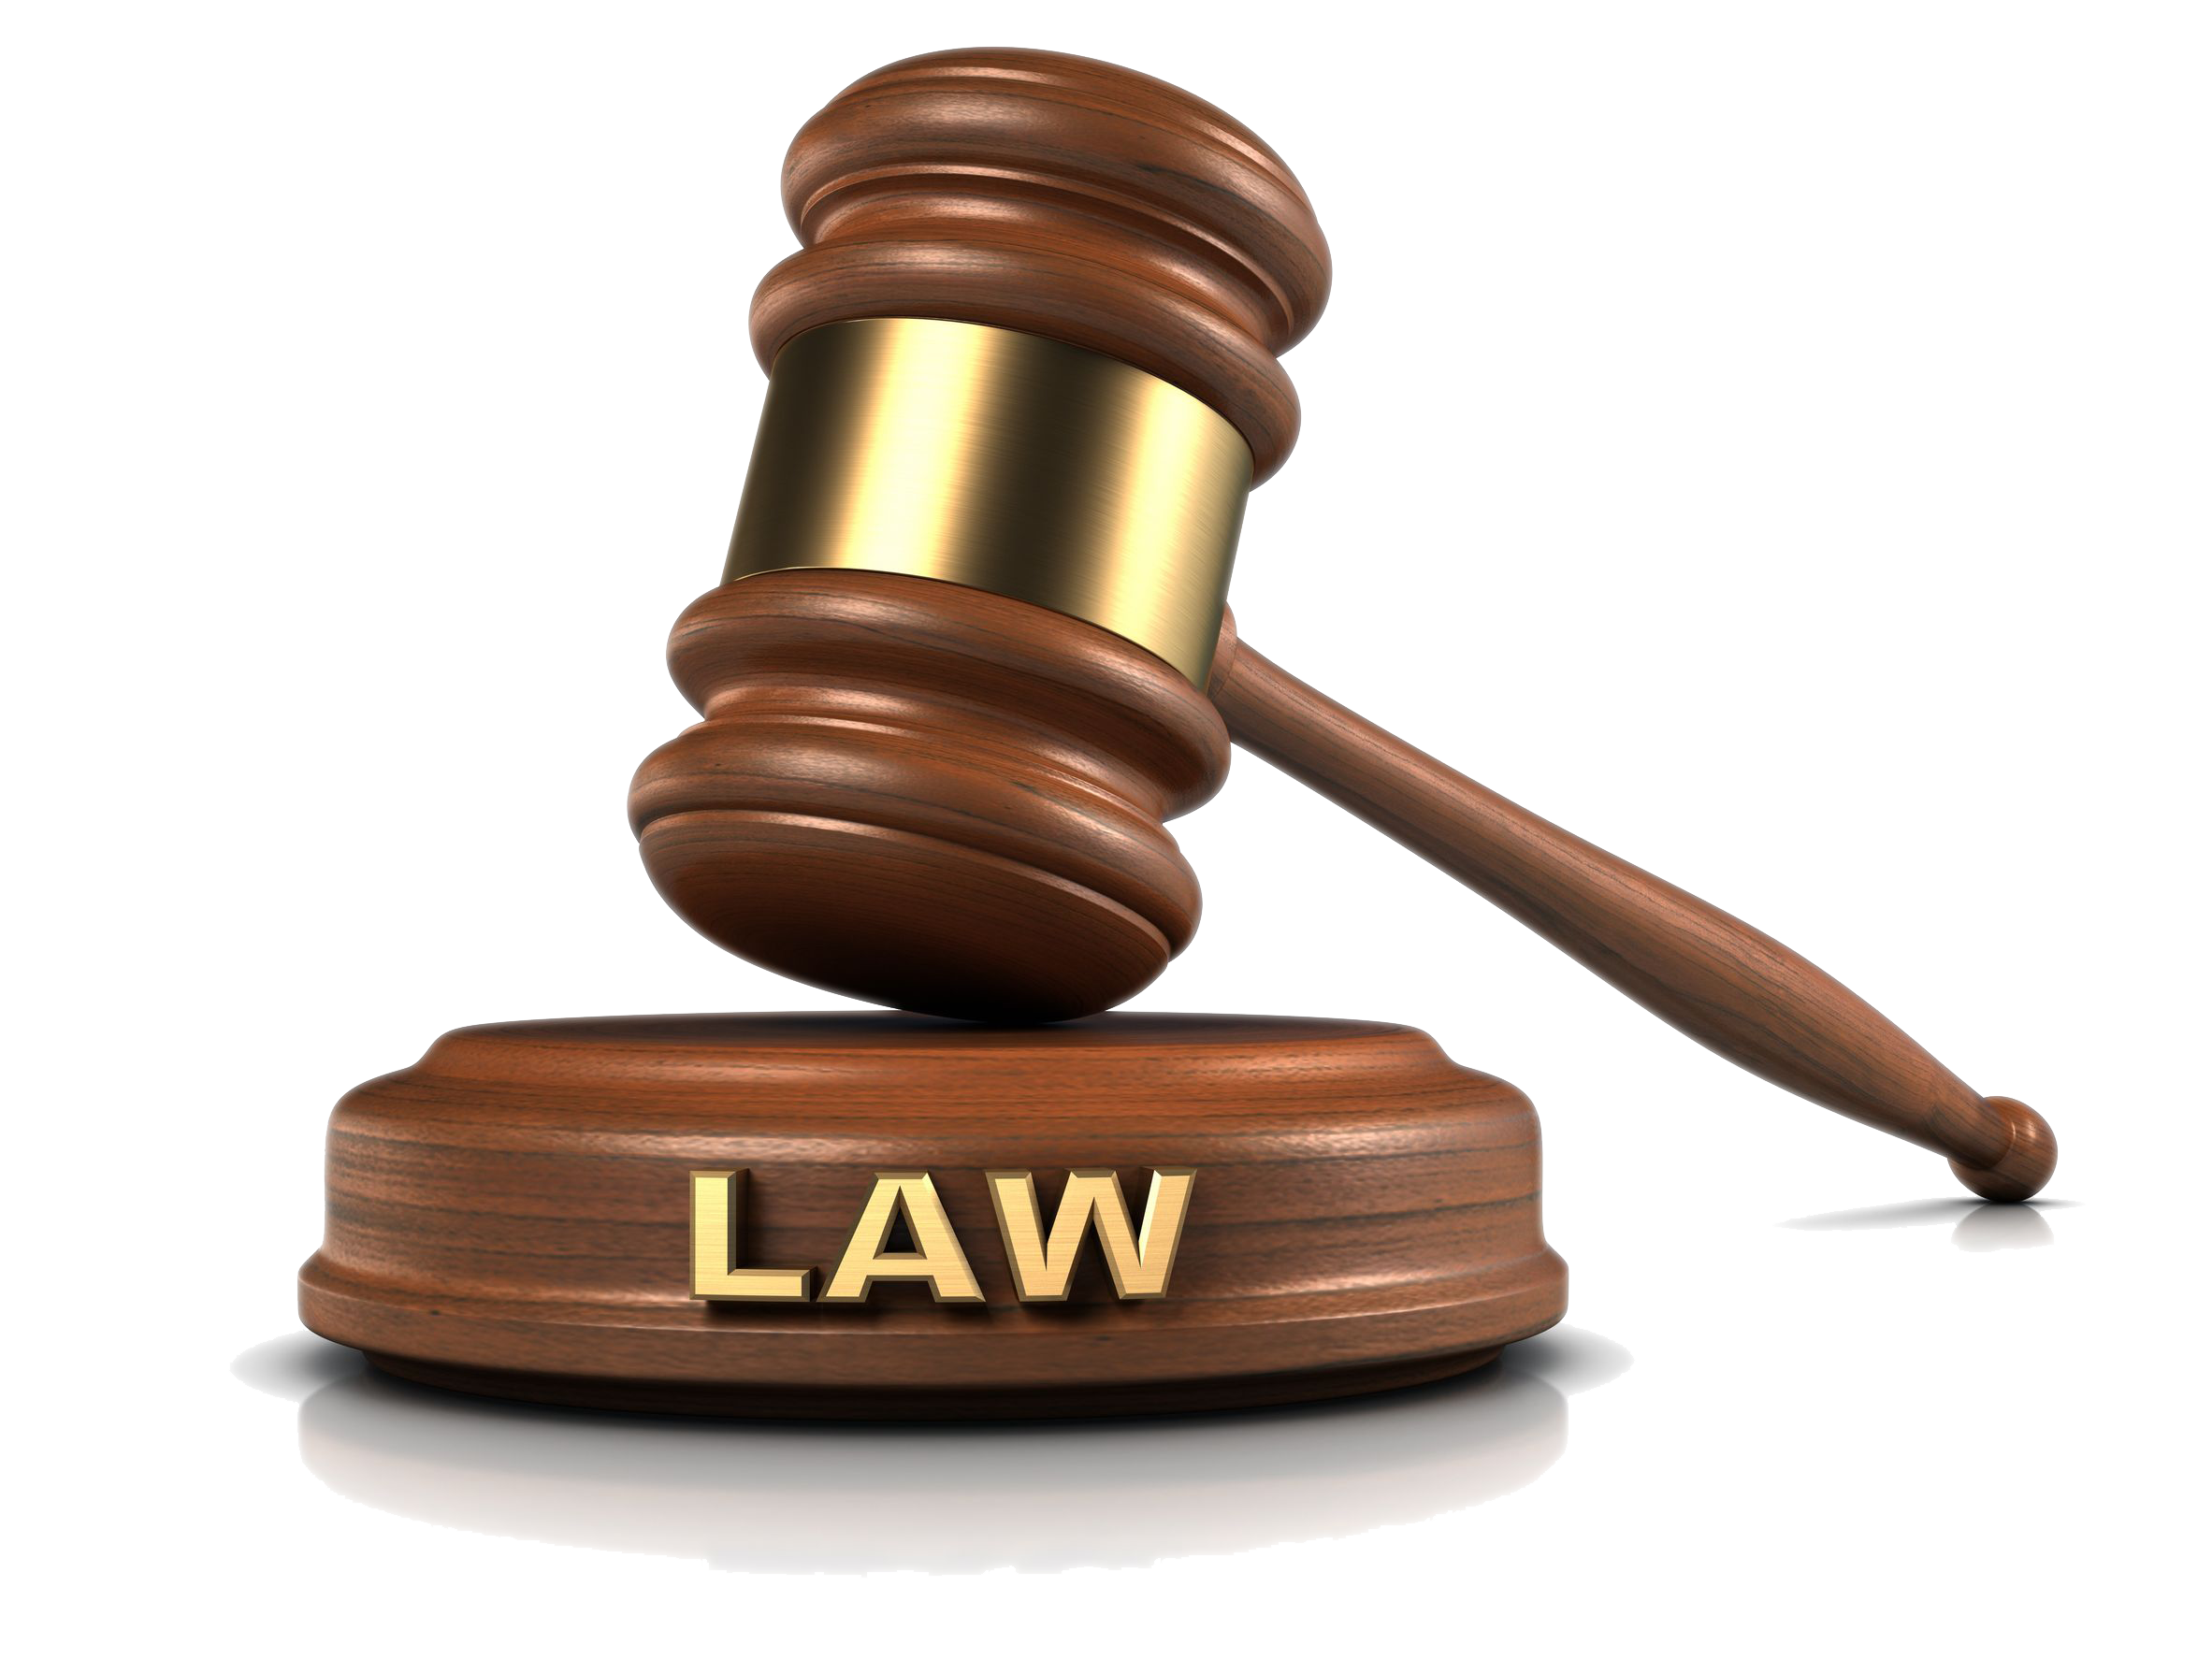 lawyer clipart mallet